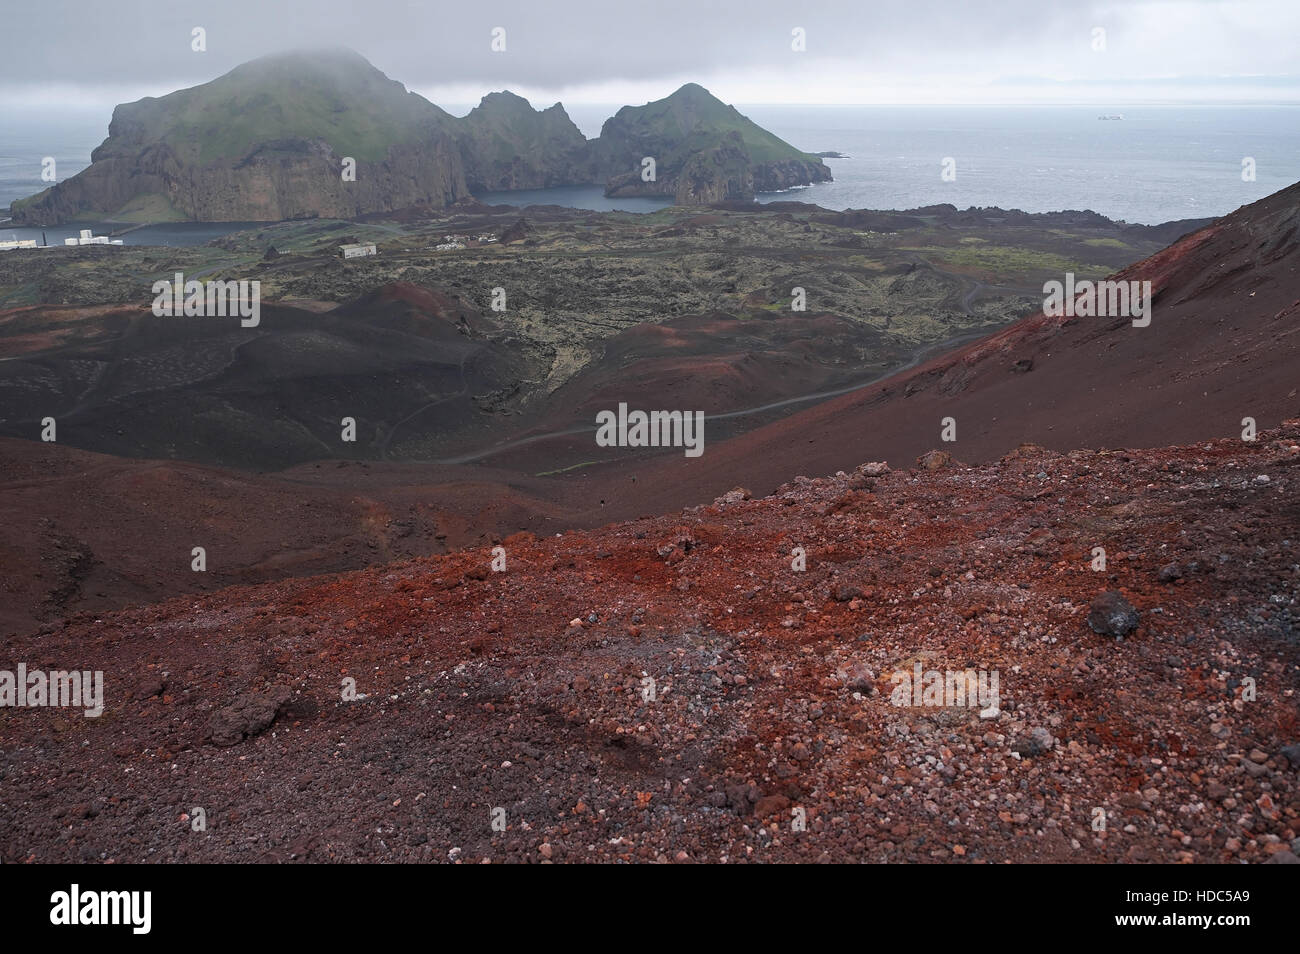 Town of Heimaey seen over volcanic rocks and lava field from Eldfell, Heimaey, Vestmannaeyjar Islands, southern - Stock Image